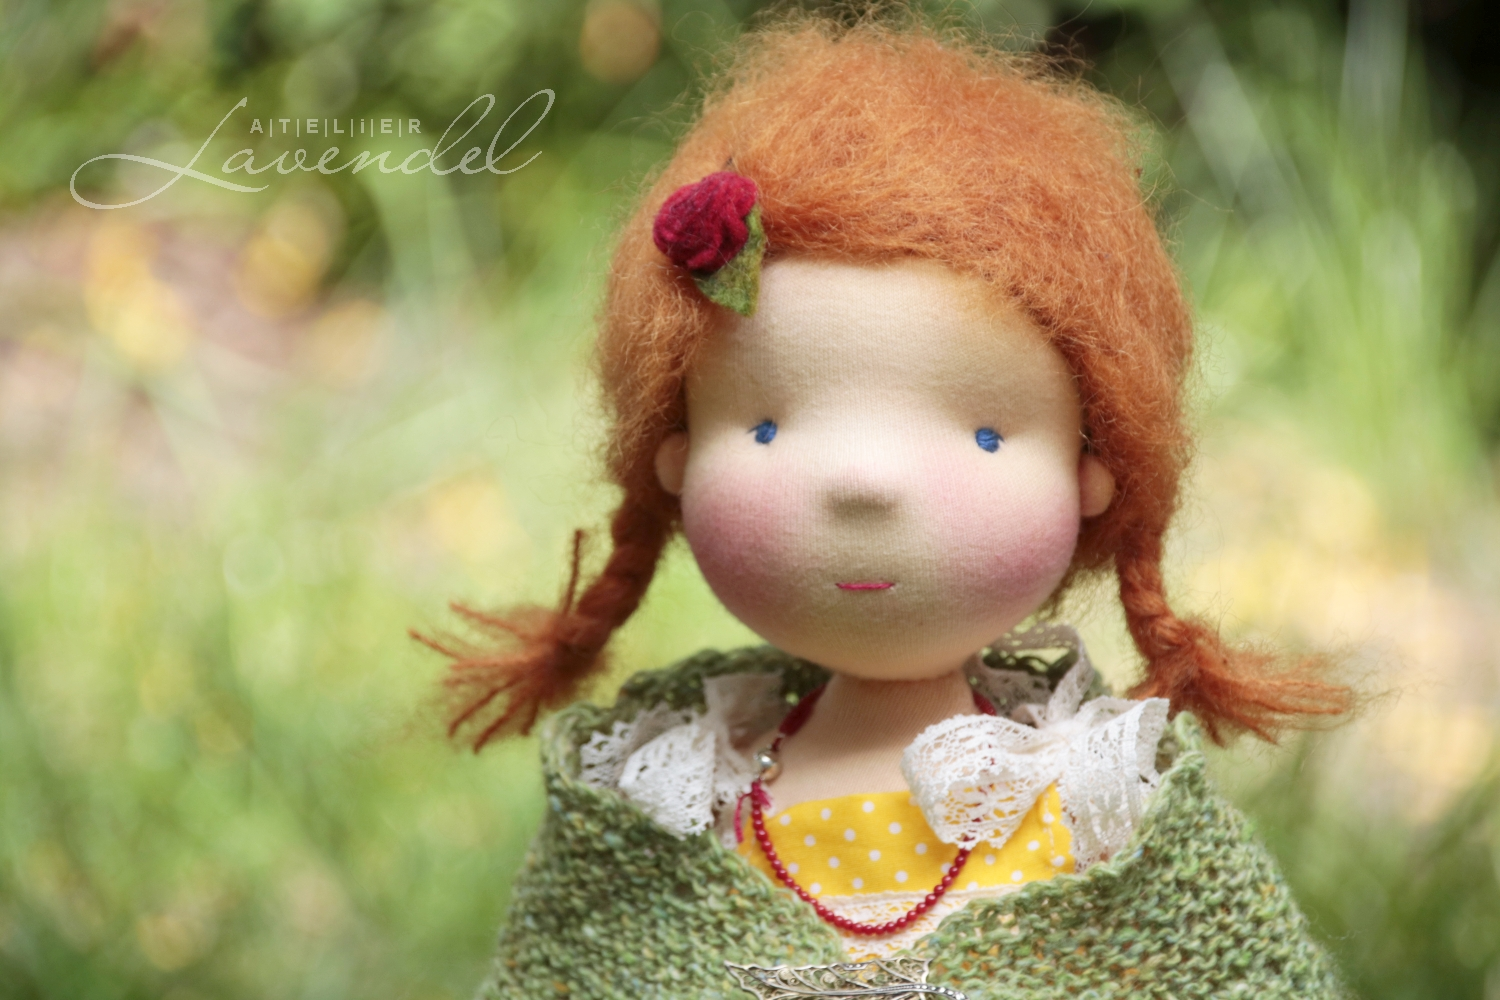 waldorf natural fibers doll handmade by Atelier Lavendel. All natural best quality organic materials. Handmade in Germany.